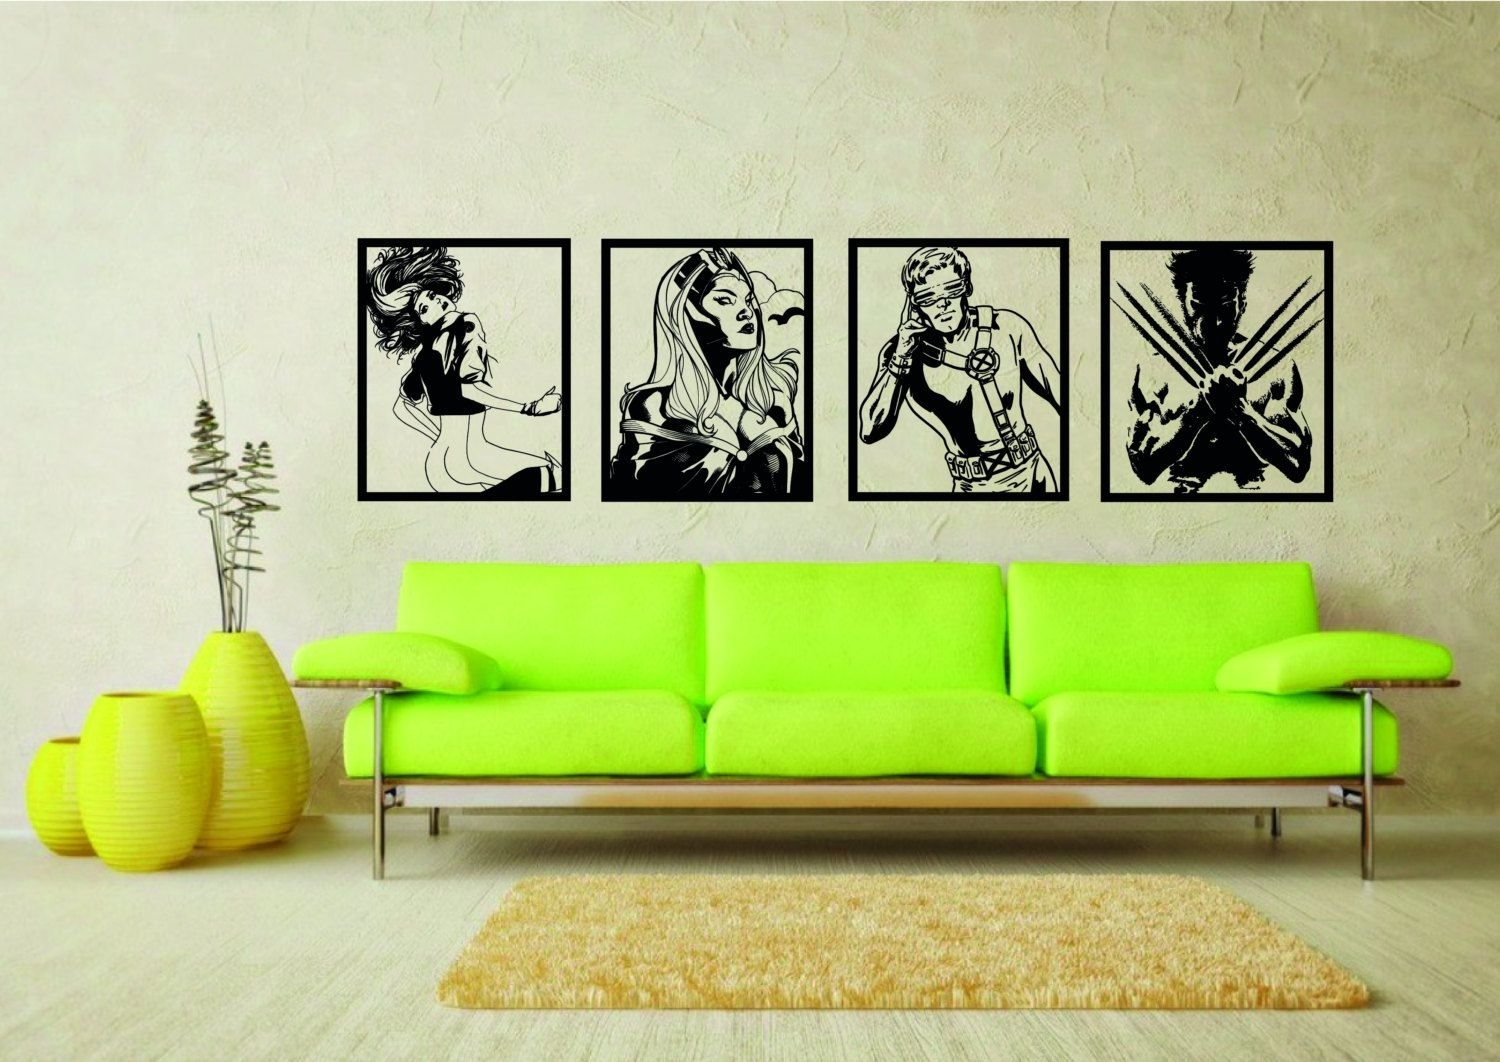 Large #marvel Comics X Men Wall Art #stickers - #vinyl Sticker Mural pertaining to Current Wall Art For Men